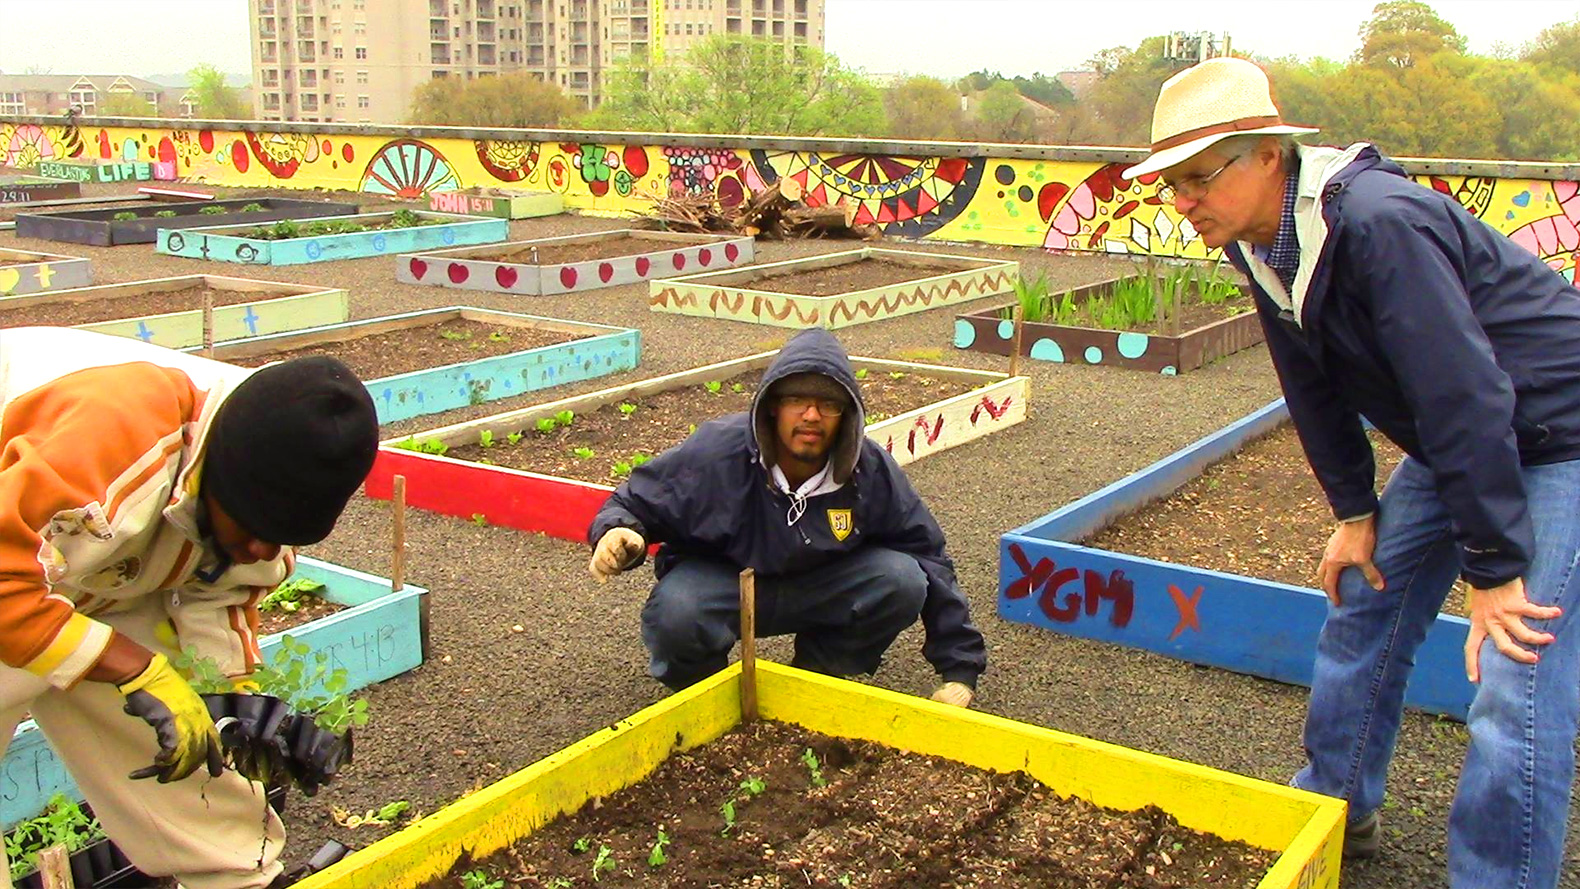 Homeless folks help feed their entire shelter with this flourishing rooftop garden